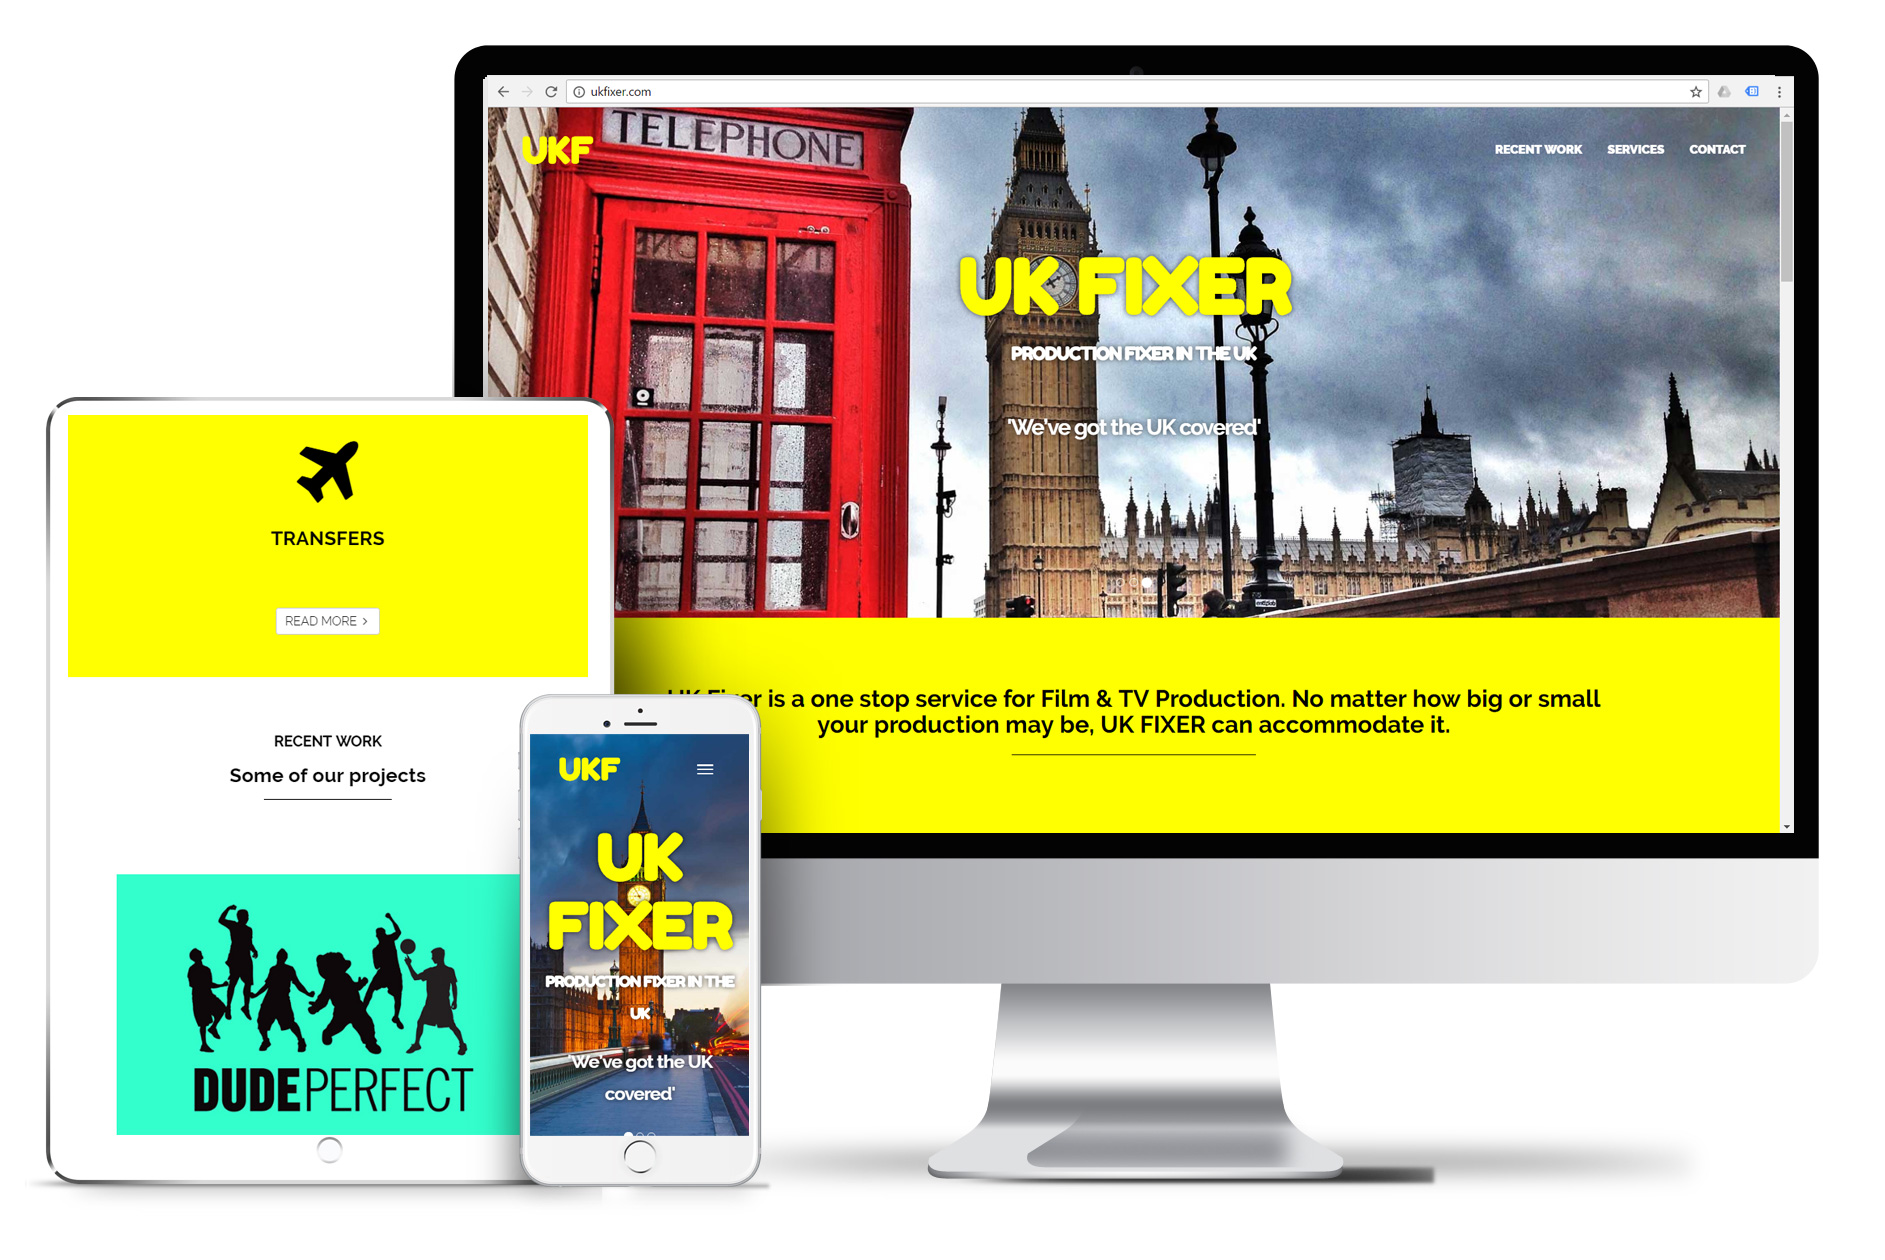 Website Design for UK Fixer